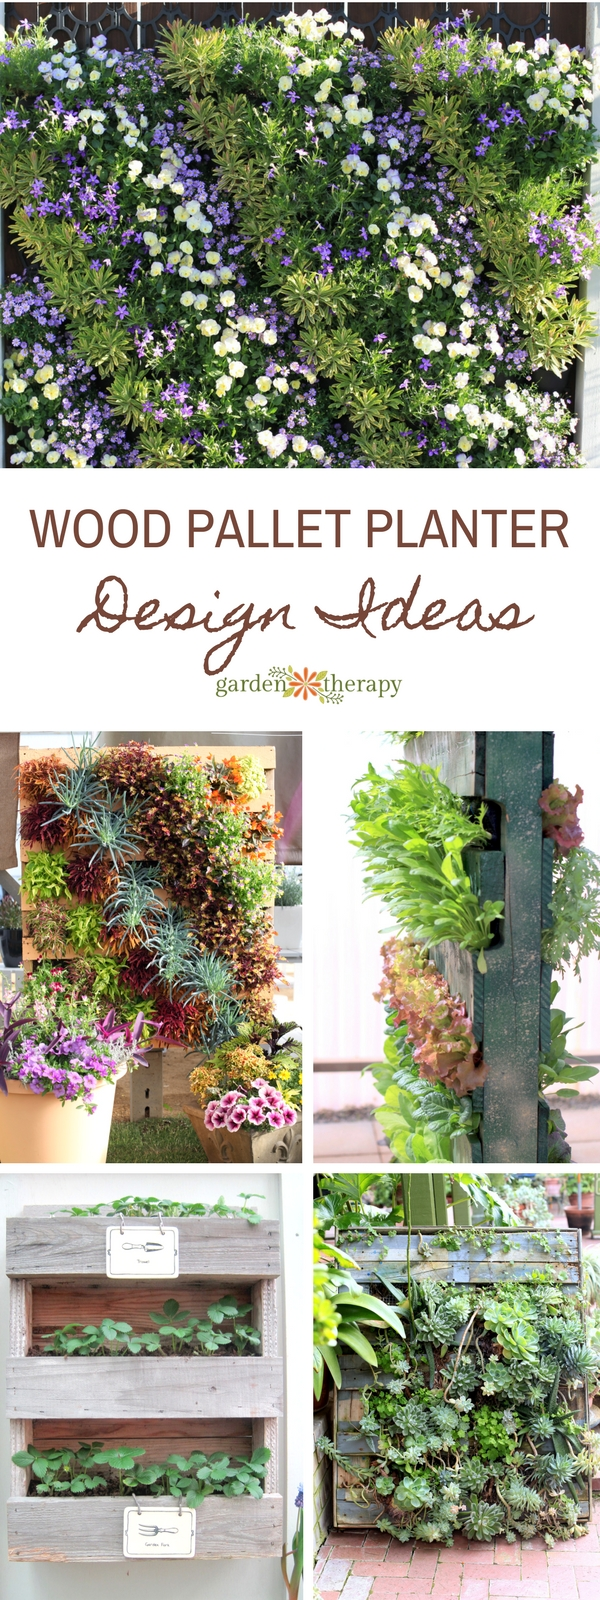 Pallet Planter Ideas That Stylishly Bring Upcycling To Your Garden Garden Therapy